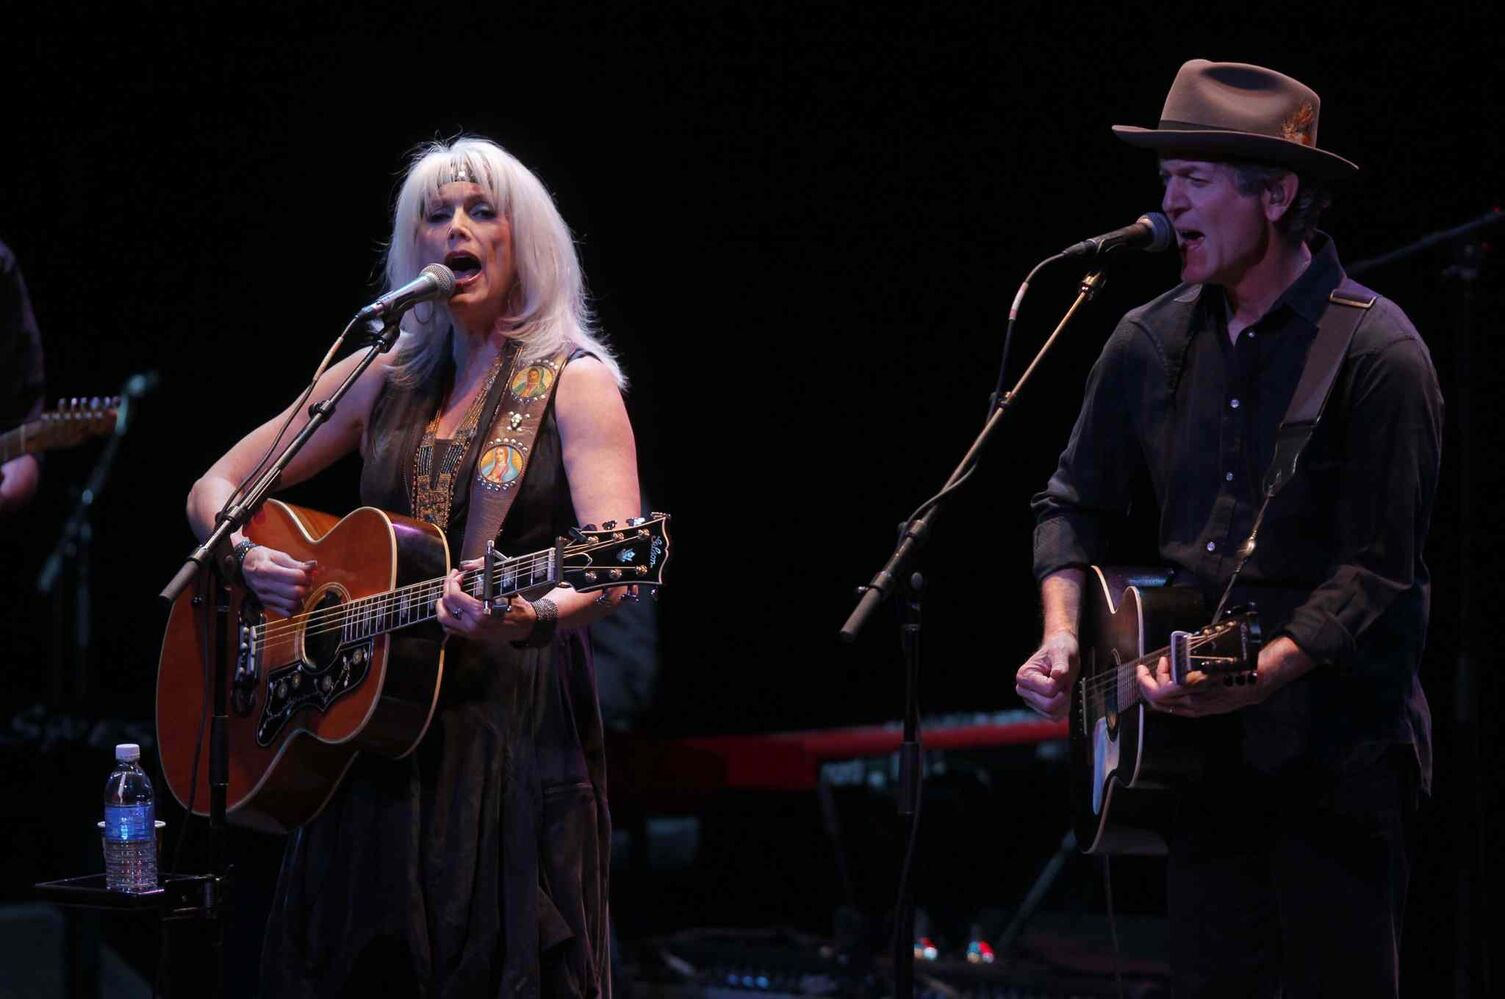 Singer-songwriters Emmylou Harris (left) and Rodney Crowell perform at the Burton Cummings Theatre Thursday night. (BORIS MINKEVICH / WINNIPEG FREE PRESS)